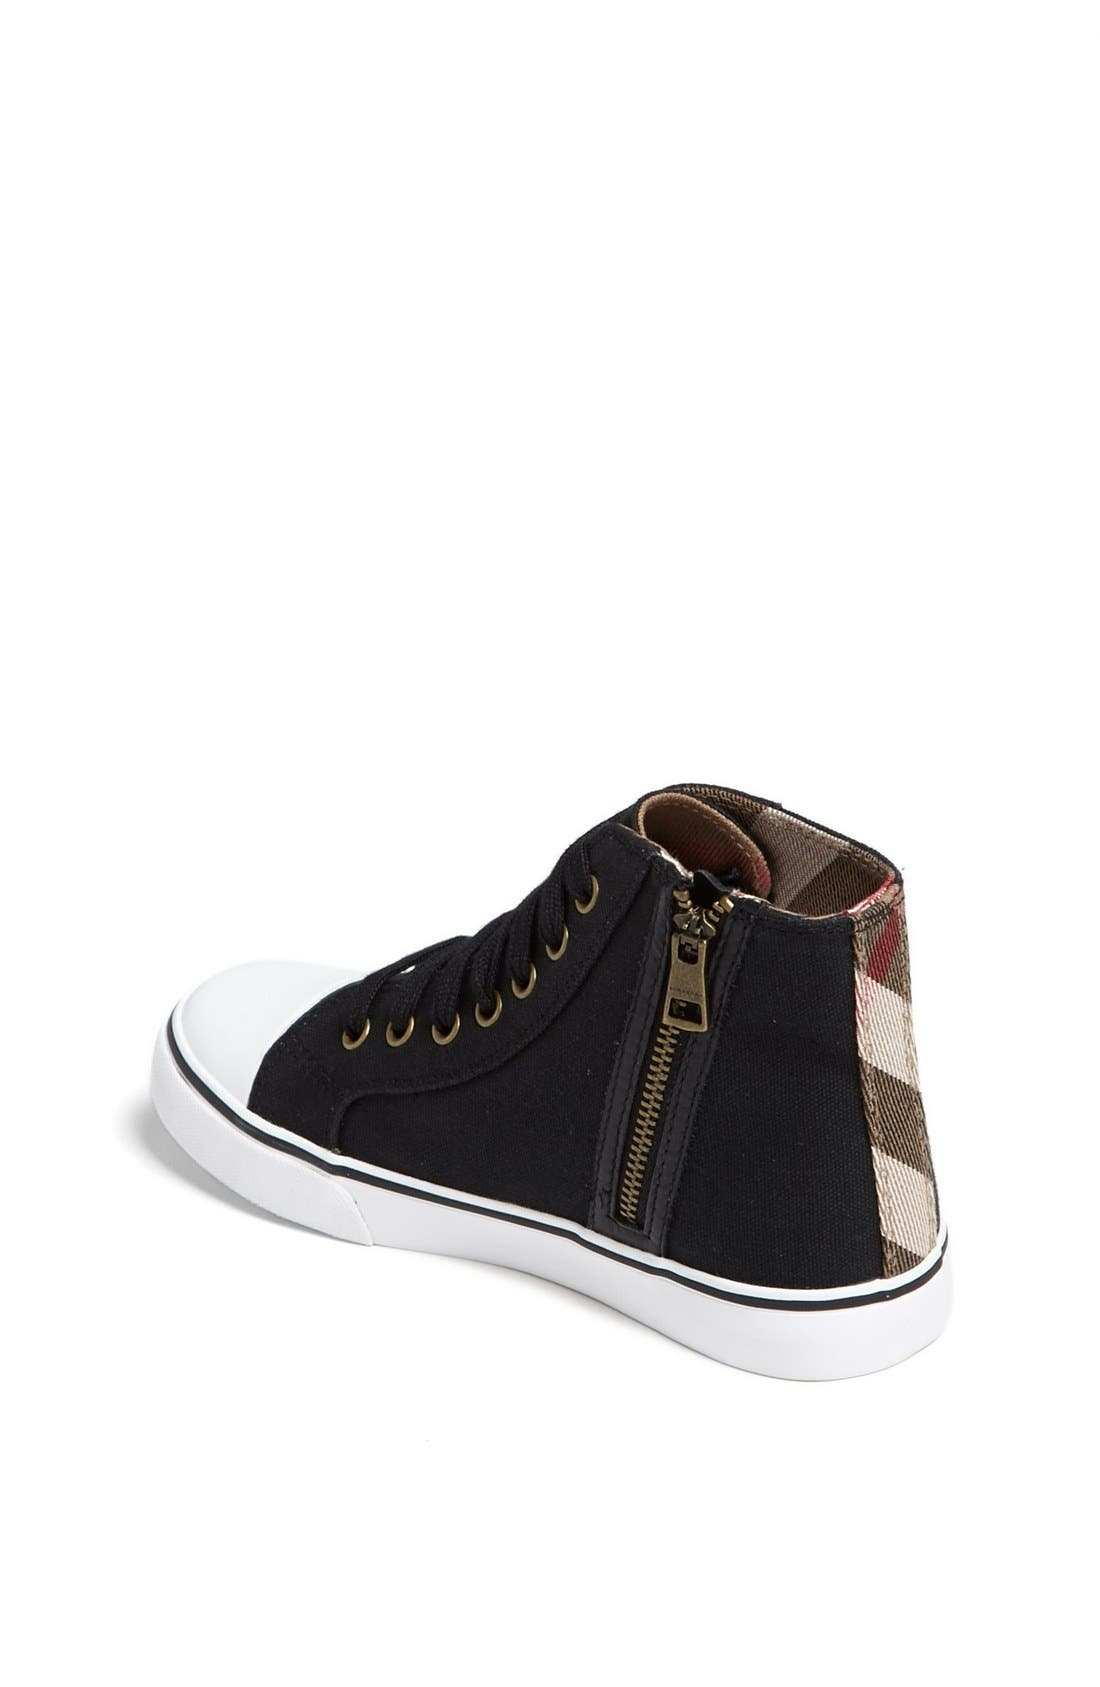 Alternate Image 2  - Burberry 'Blaze' High Top Sneaker (Walker, Toddler & Little Kid)